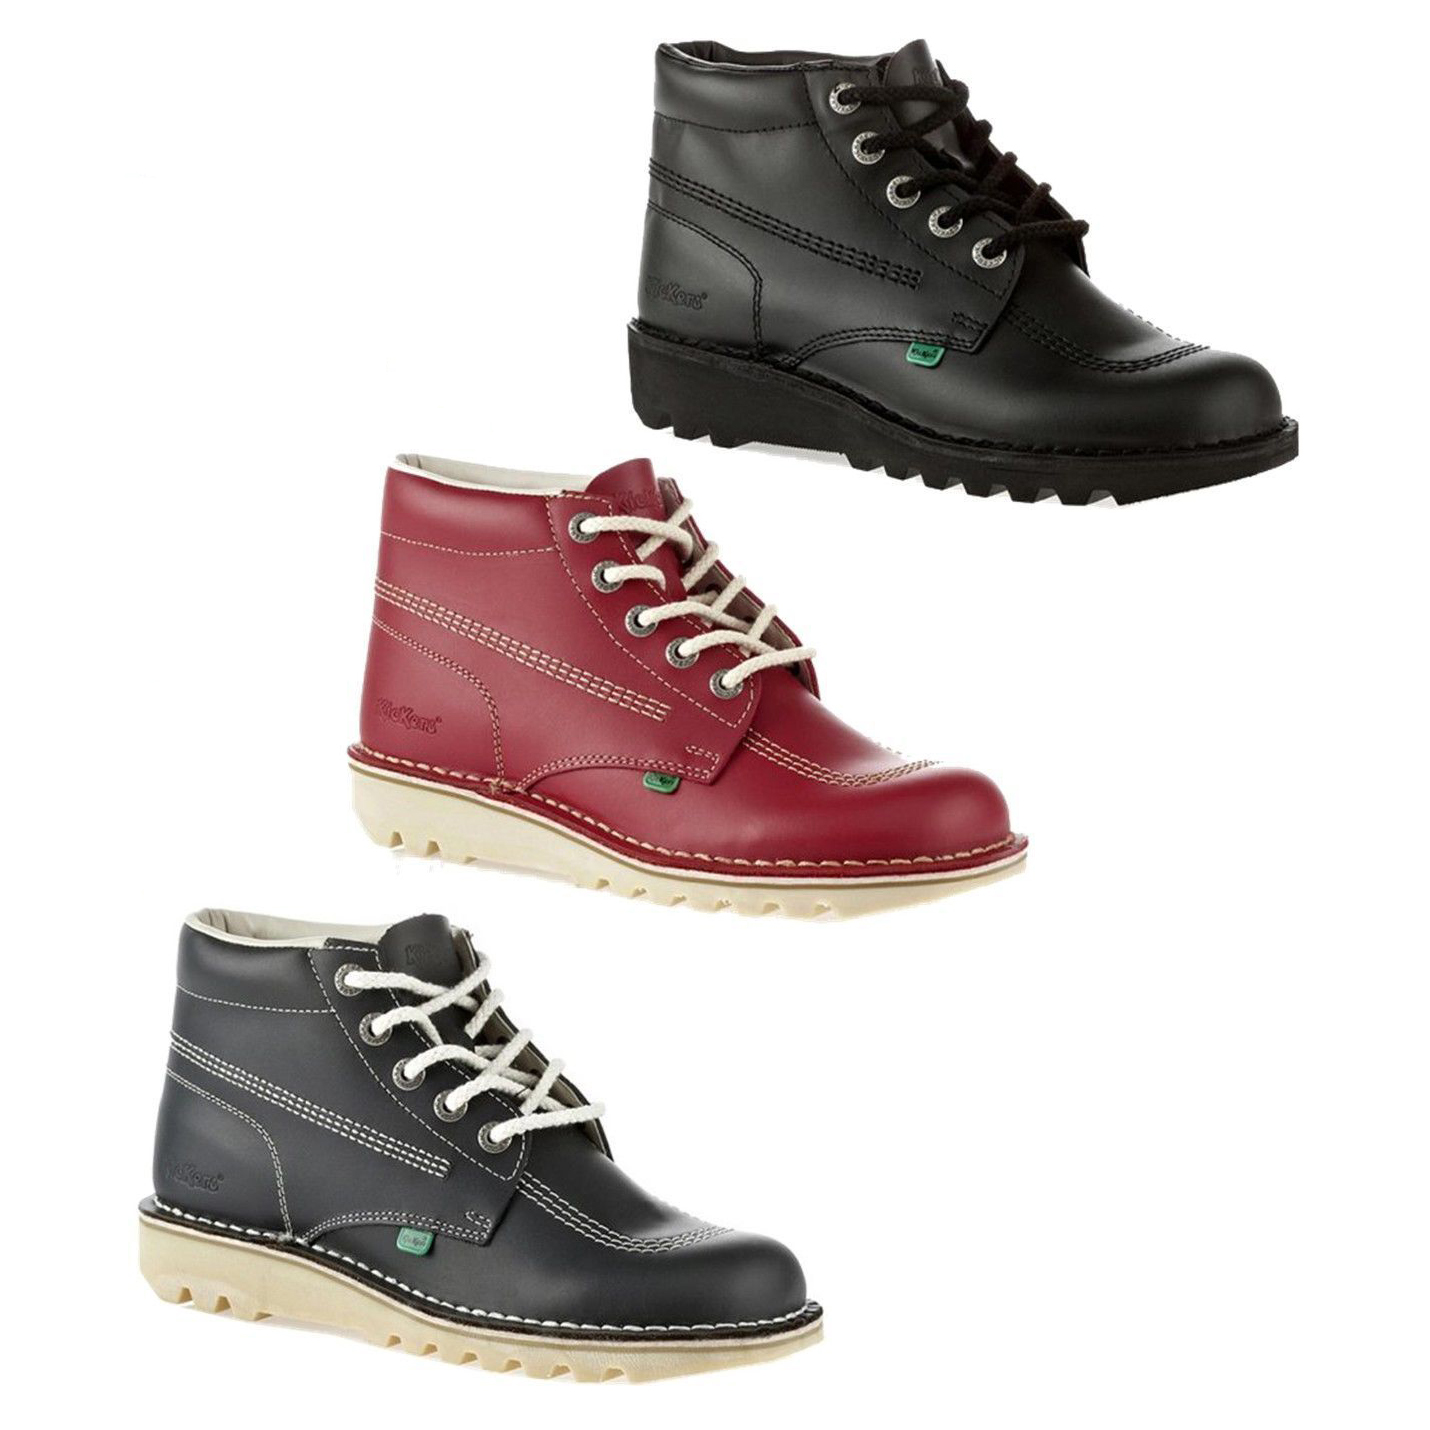 Kickers Kick Hi Mens Black Red Blue Leather Ankle Boots ...